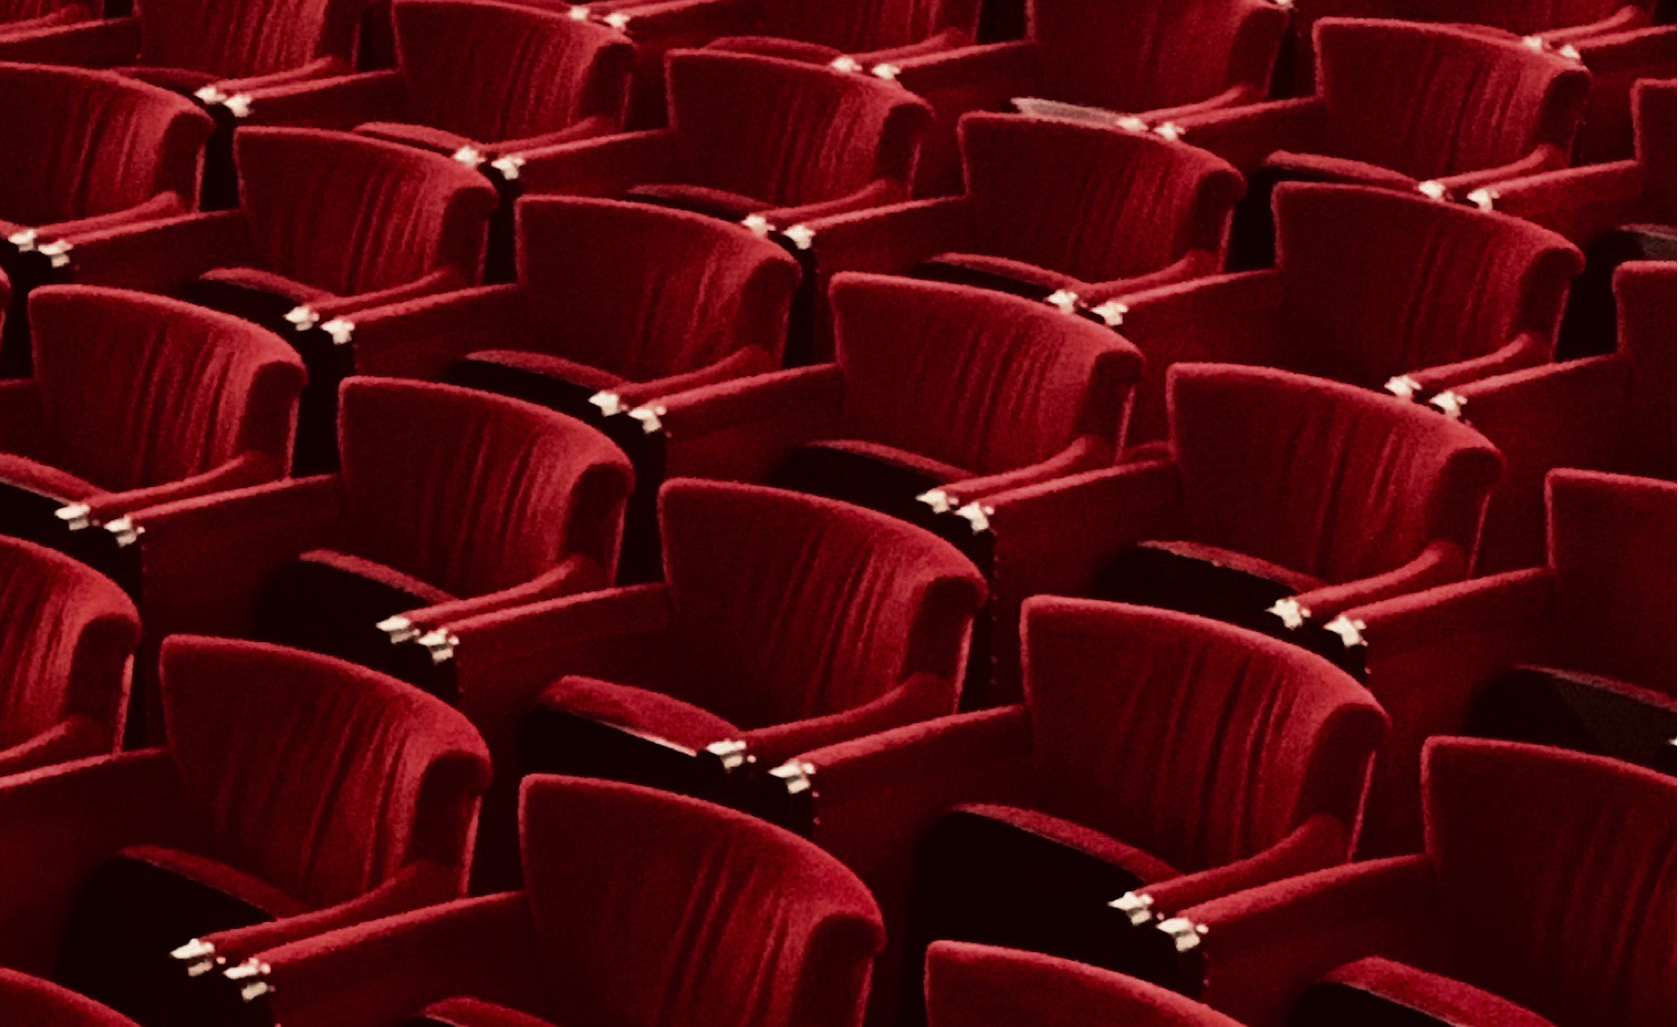 The San Carlo Auditorium Seats